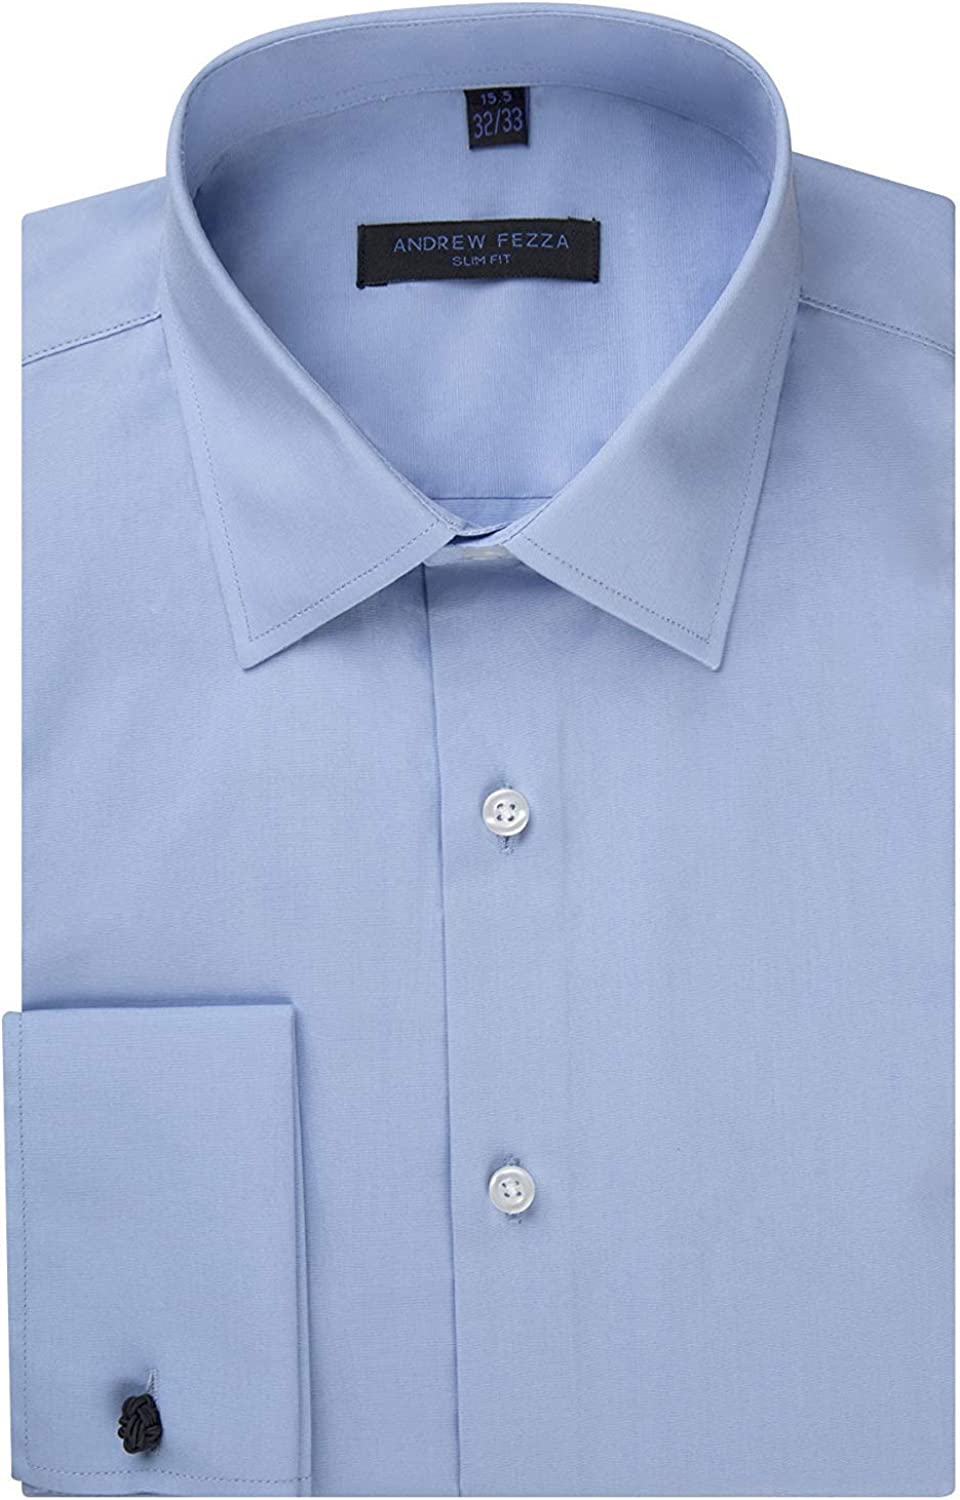 Andrew Today's only Fezza Men's Slim Fit French Cuff Cotton Dress Super Special SALE held Solid Shirt